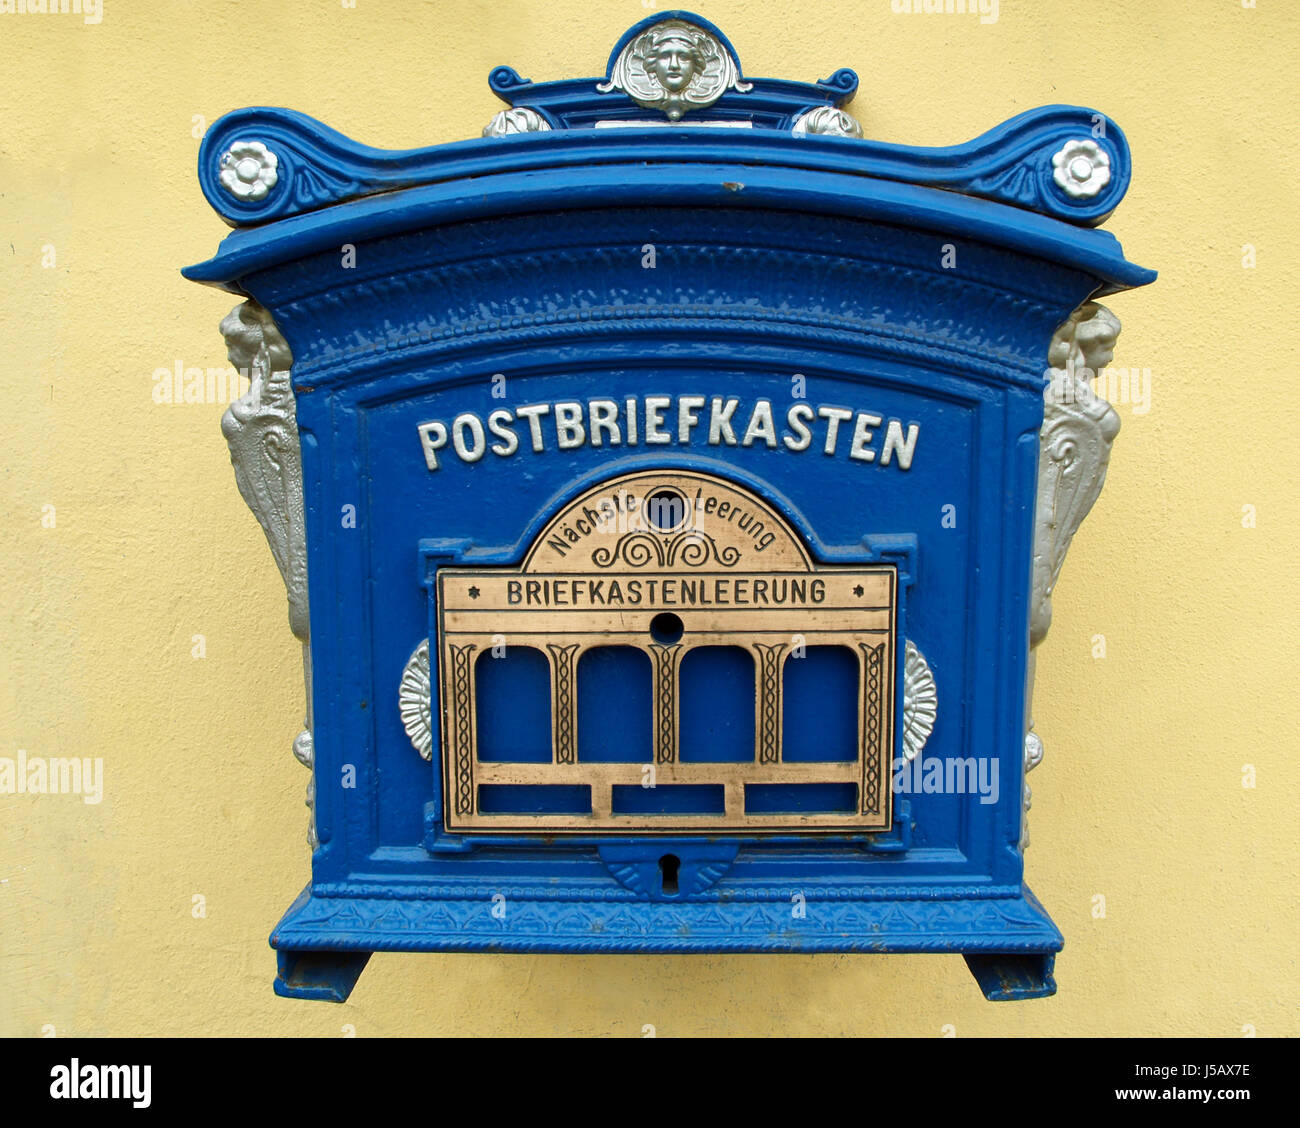 Antique Mailbox Letter Mail Mailboxes Post Old Postbriefkasten Stock Photo Alamy